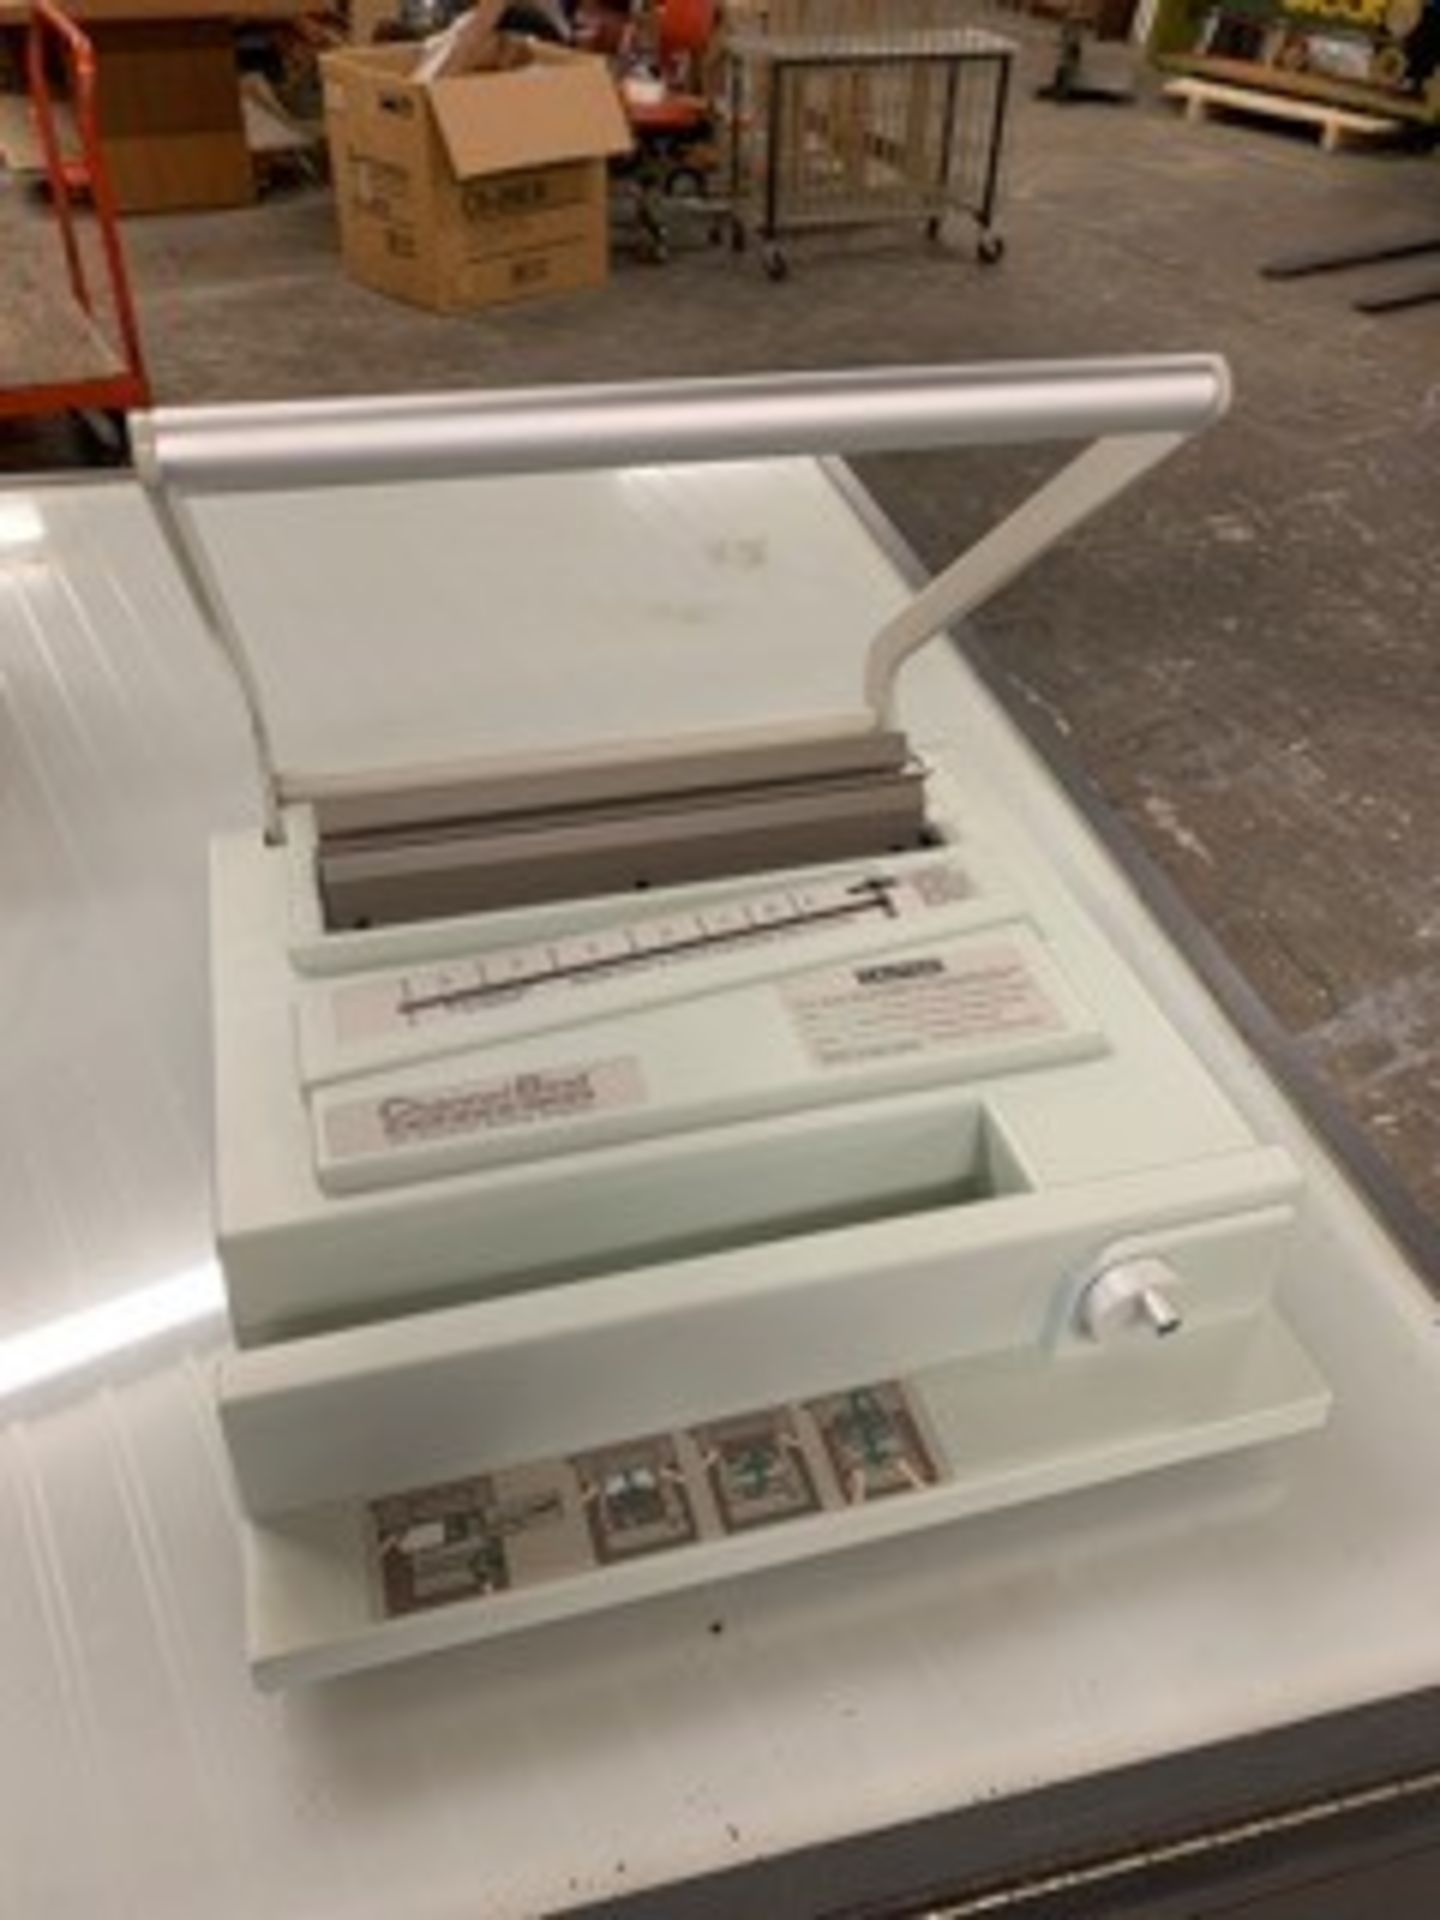 Lot 5072 - CHANNEL BIND MACHINE (LOCATED AT: 16335 LIMA ROAD, HUNTERTOWN, IN 46748)